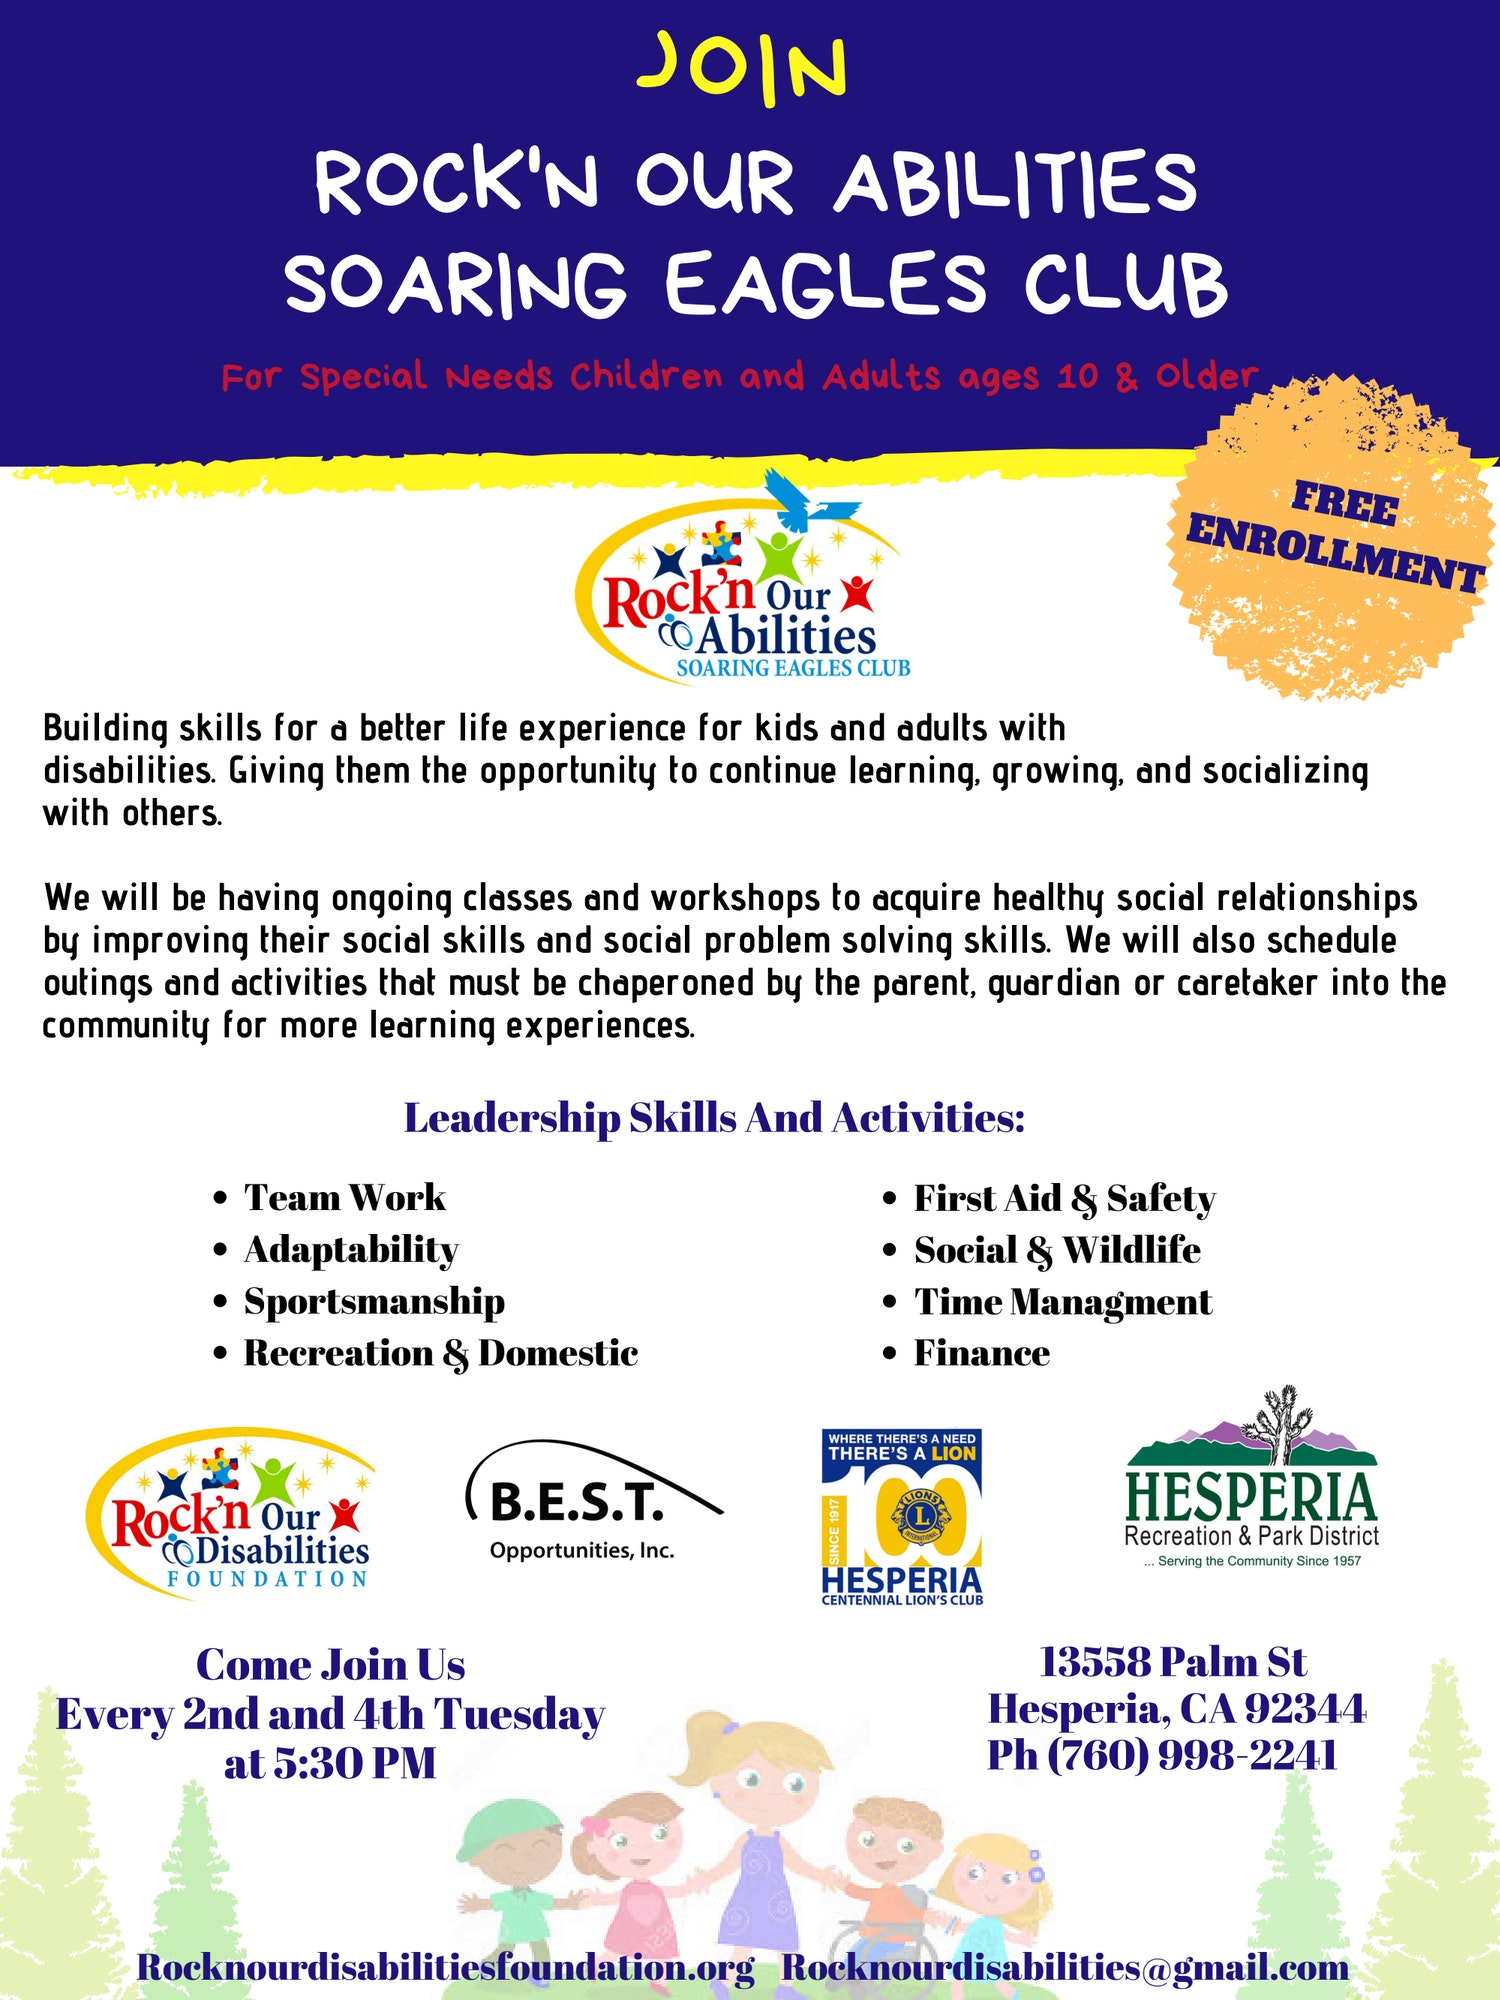 Join Rock 'n our Abilities Soaring Eagles Club Flyer; For special needs children and adults ages 10 and older. Building skills for a better life experience for kids and adults with disabilities. Giving them the opportunity to continue learning, growing, and socializing with others. We will be having ongoing classes and workshops to acquire healthy social relationships by improving their social skills and social problem solving skills. We will also schedule outings and activities that must be chaperoned by the parent, guardian or caretaker into the community for more learning experiences. Leadership skills and activities: Team work. First aid & safety. Adaptability. Social & Wildlife. Sportsmanship. Time management. Recreation & domestic. Finance. Come join us every 2nd & 4th Tuesday at 5:30 pm. 13558 Palm Street Hesperia, CA 92344. Phone: (760) 998-2241